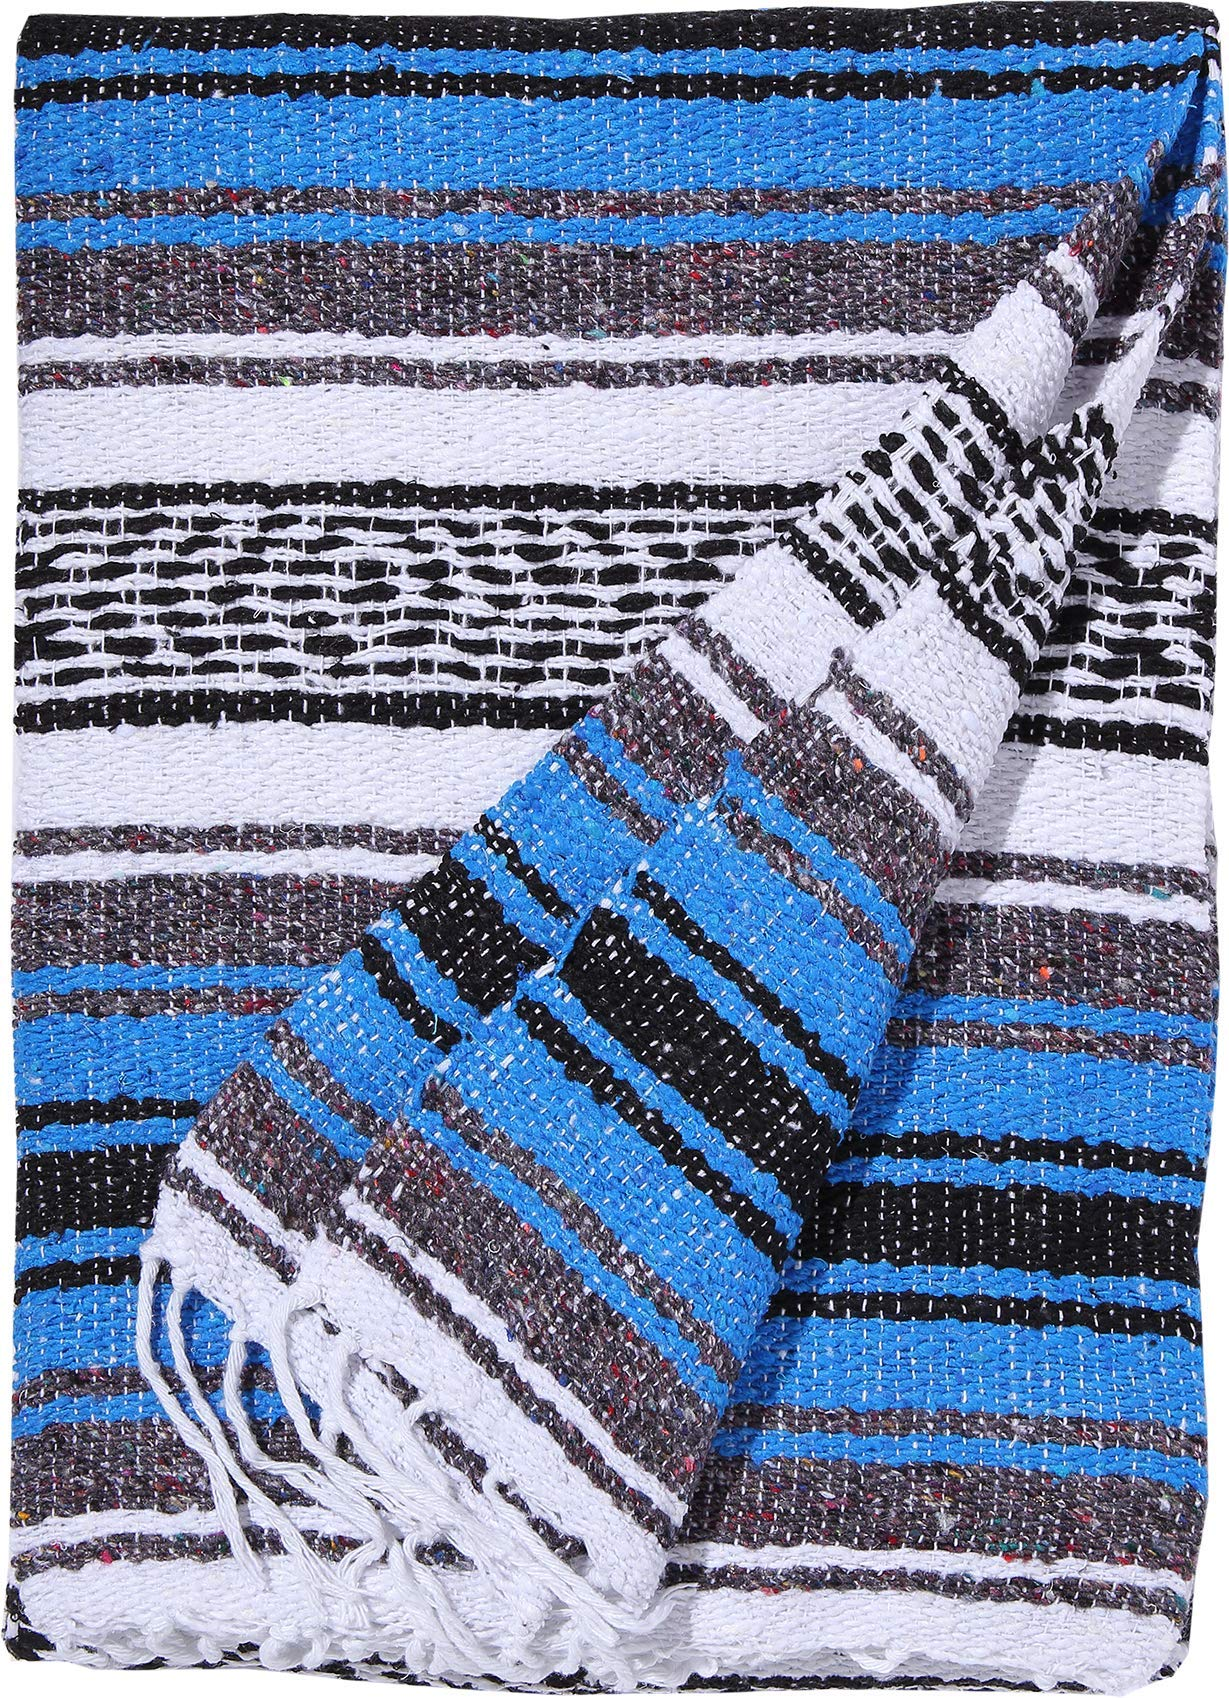 El Paso Designs Genuine Mexican Falsa Blanket - Yoga Studio Blanket, Colorful, Soft Woven Serape Imported from Mexico (Blue) by El Paso Designs (Image #2)